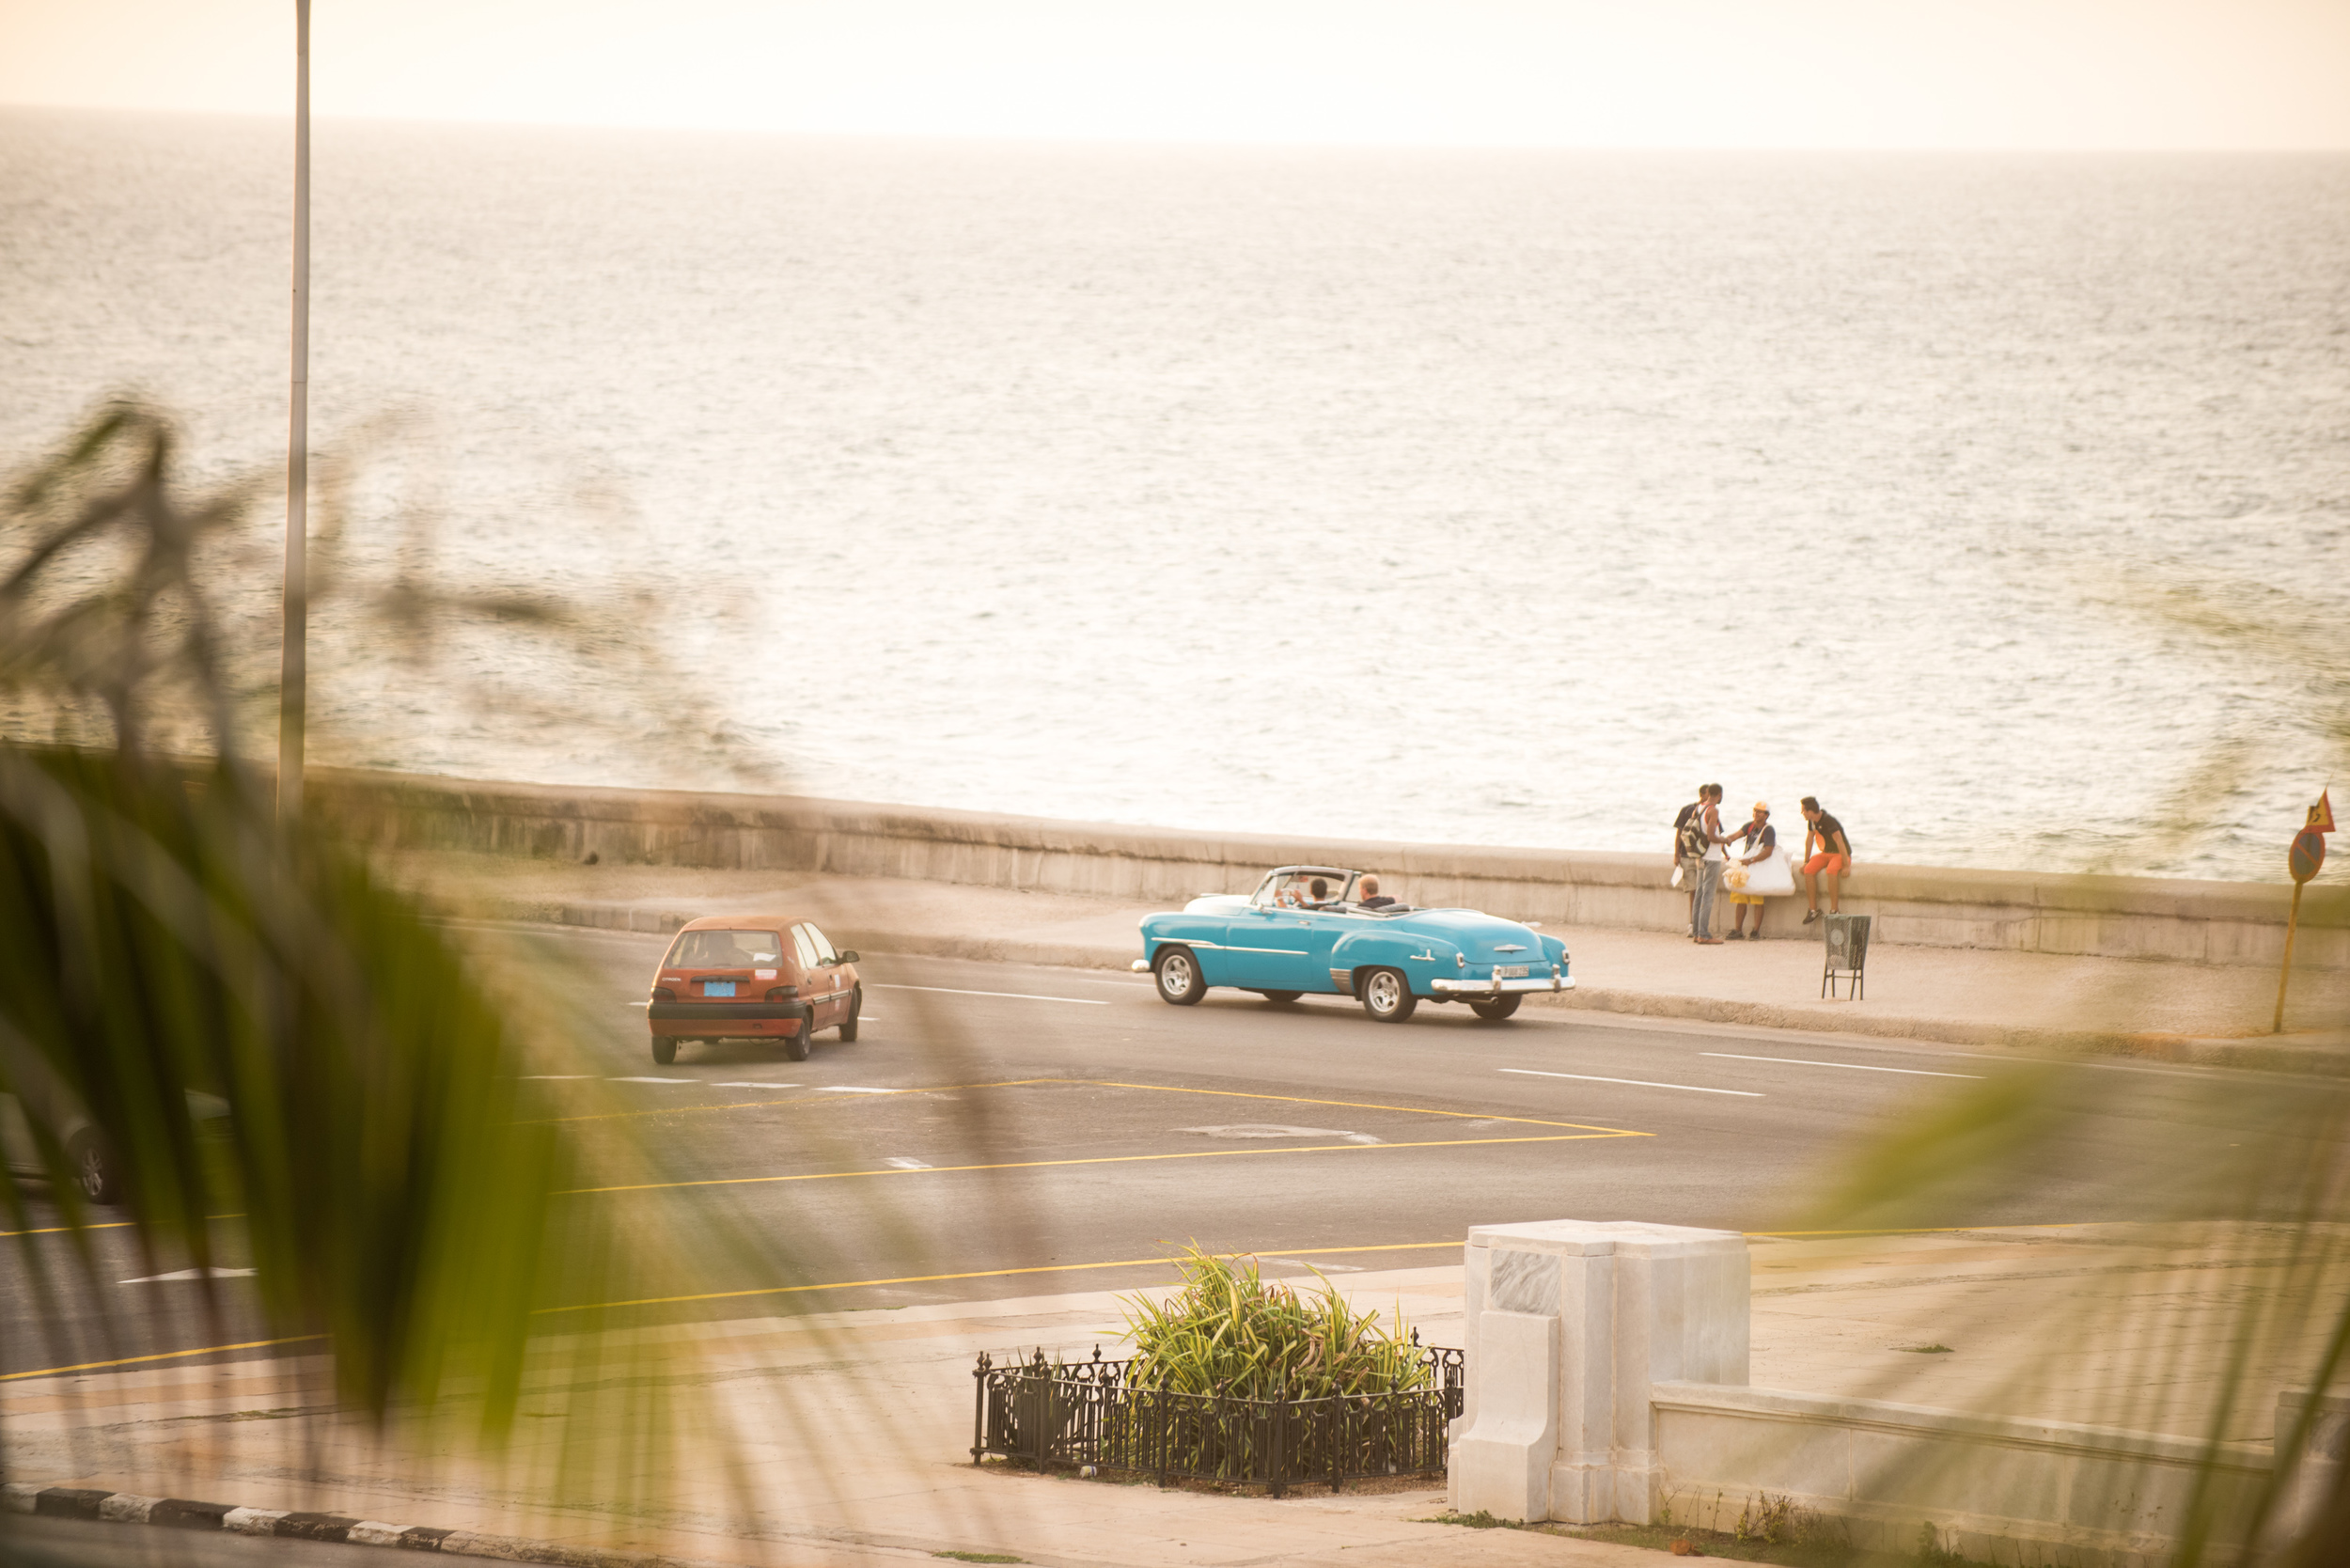 Old cars and people enjoying the evening along the Malecon – the iconic road that follows the coast through Havana.